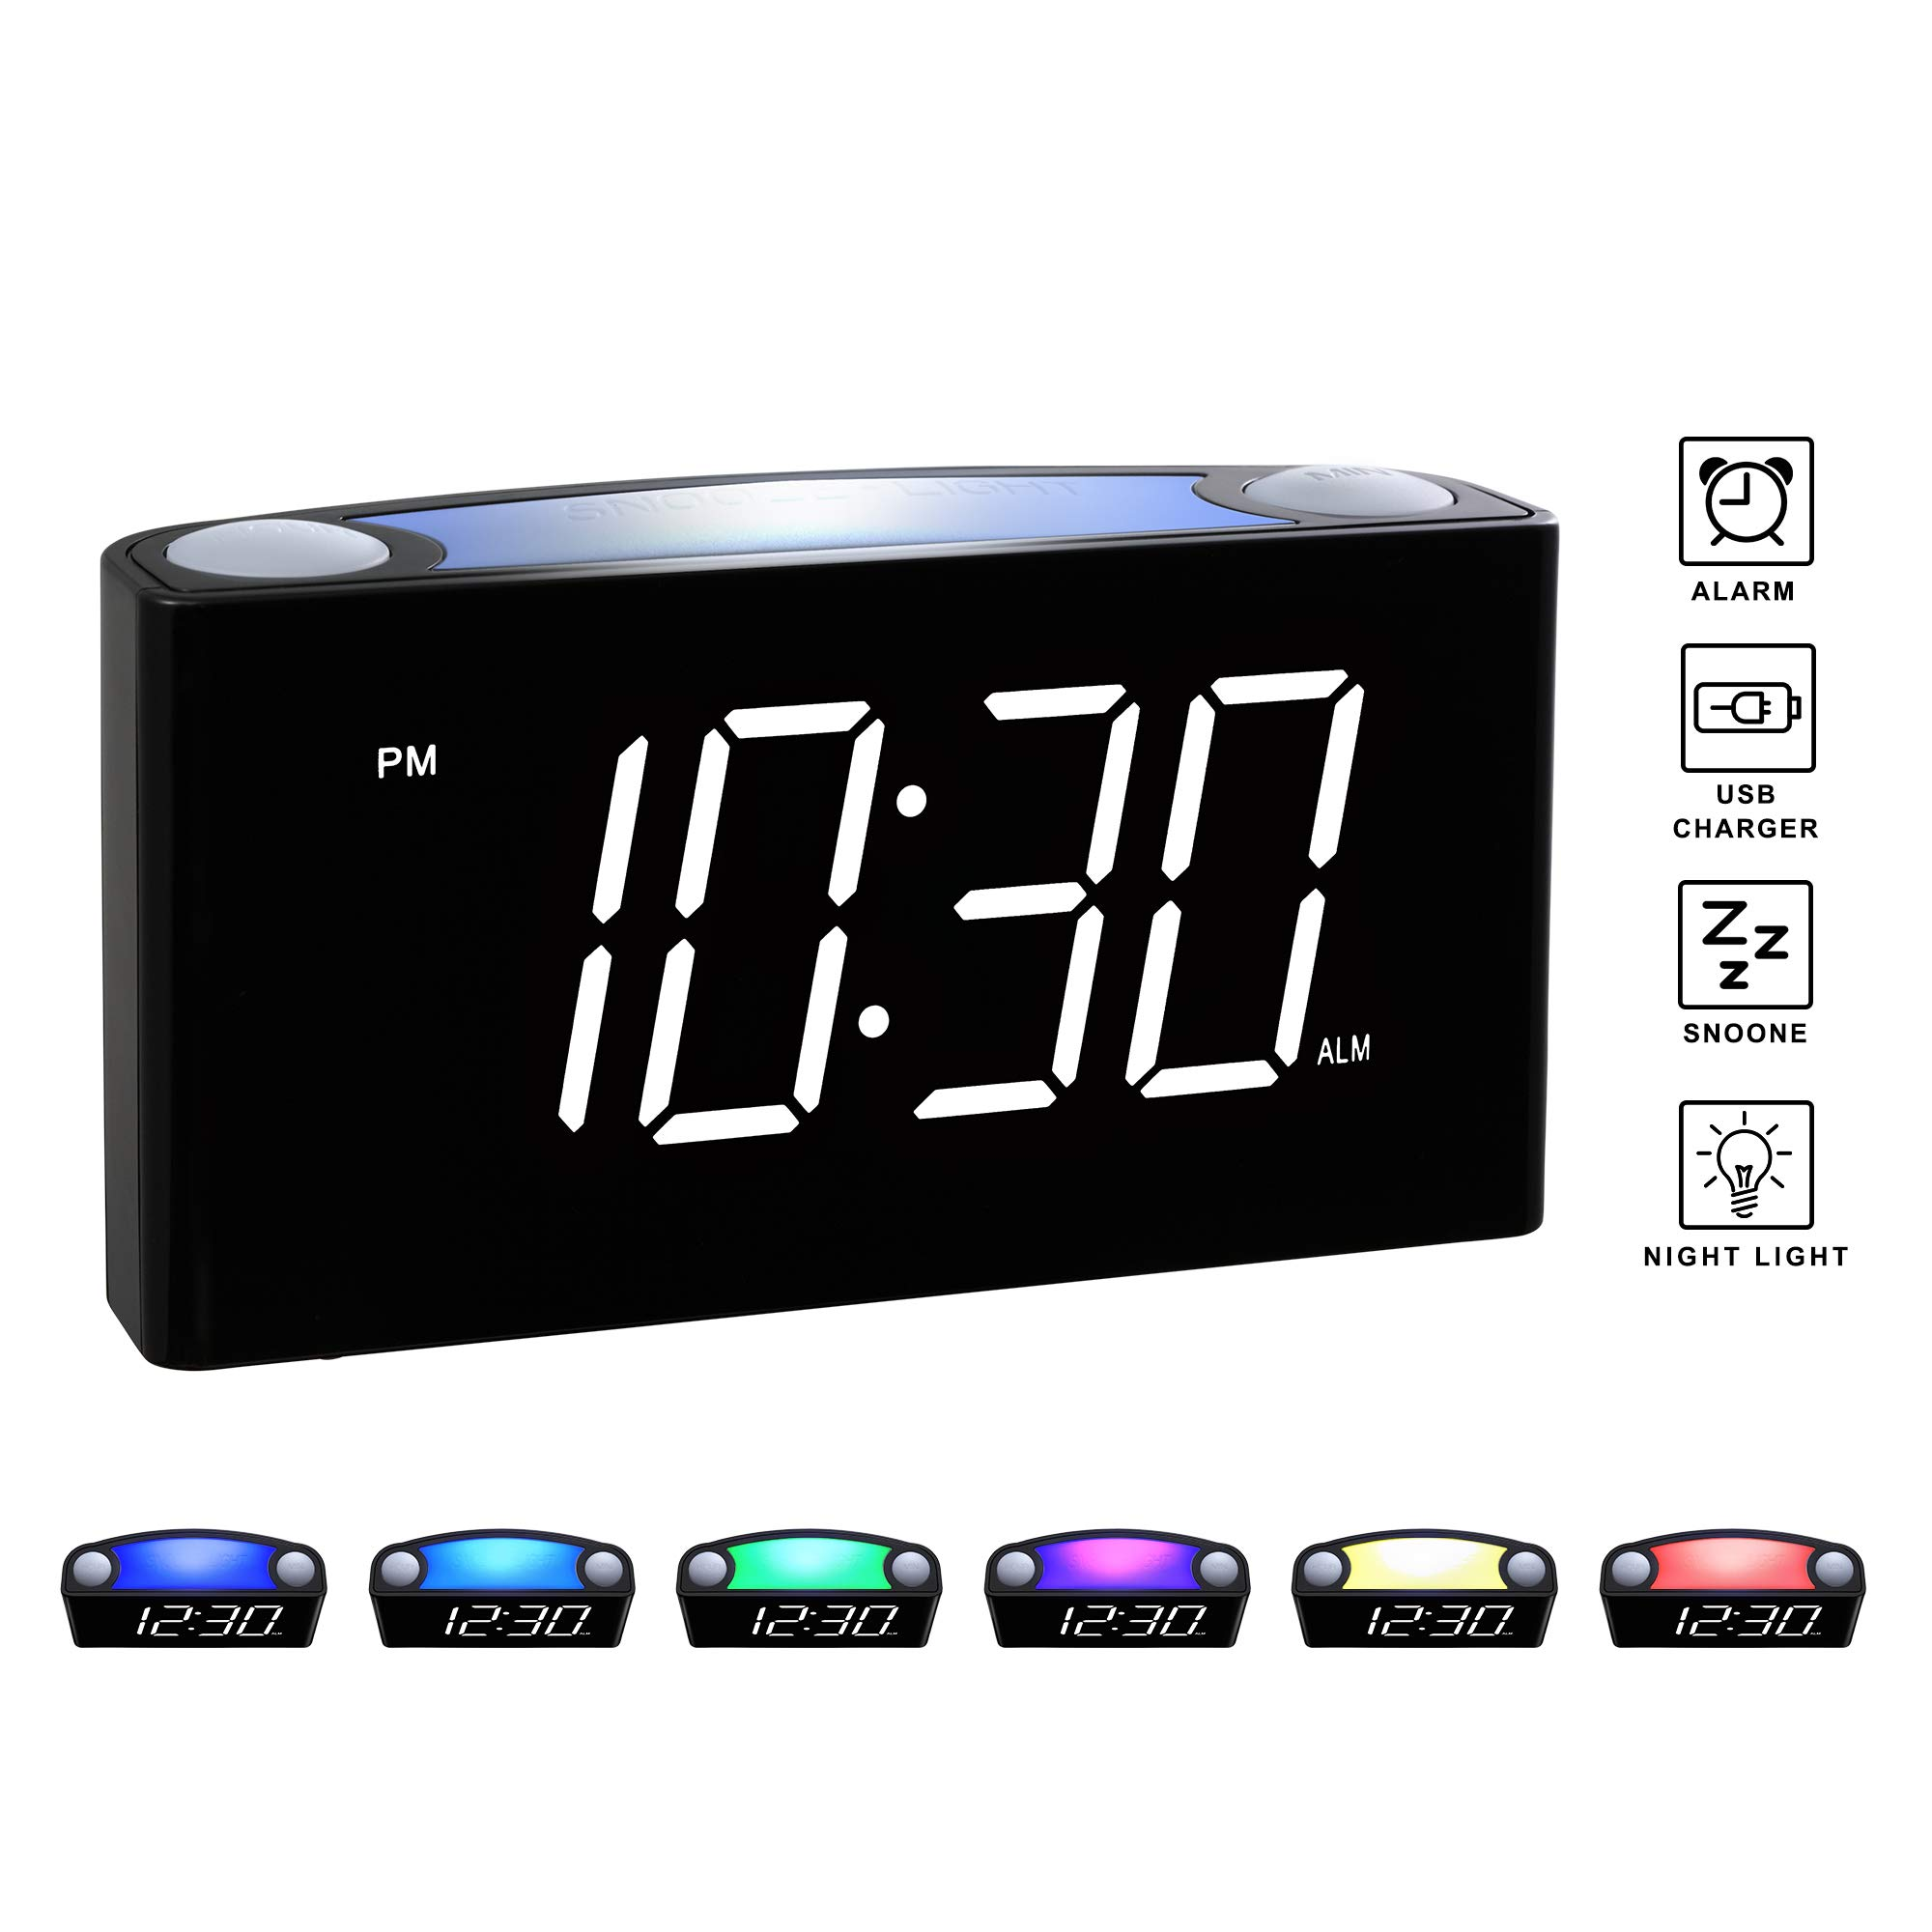 Rocam Digital Alarm Clock for Bedrooms - Large 6.5'' LED Display with Dimmer, 7 Color Night Light, Easy to Set, Snooze Function, USB Charger Ports, Battery Backup, 12/24 Hours for Desk, Home & Kitchen